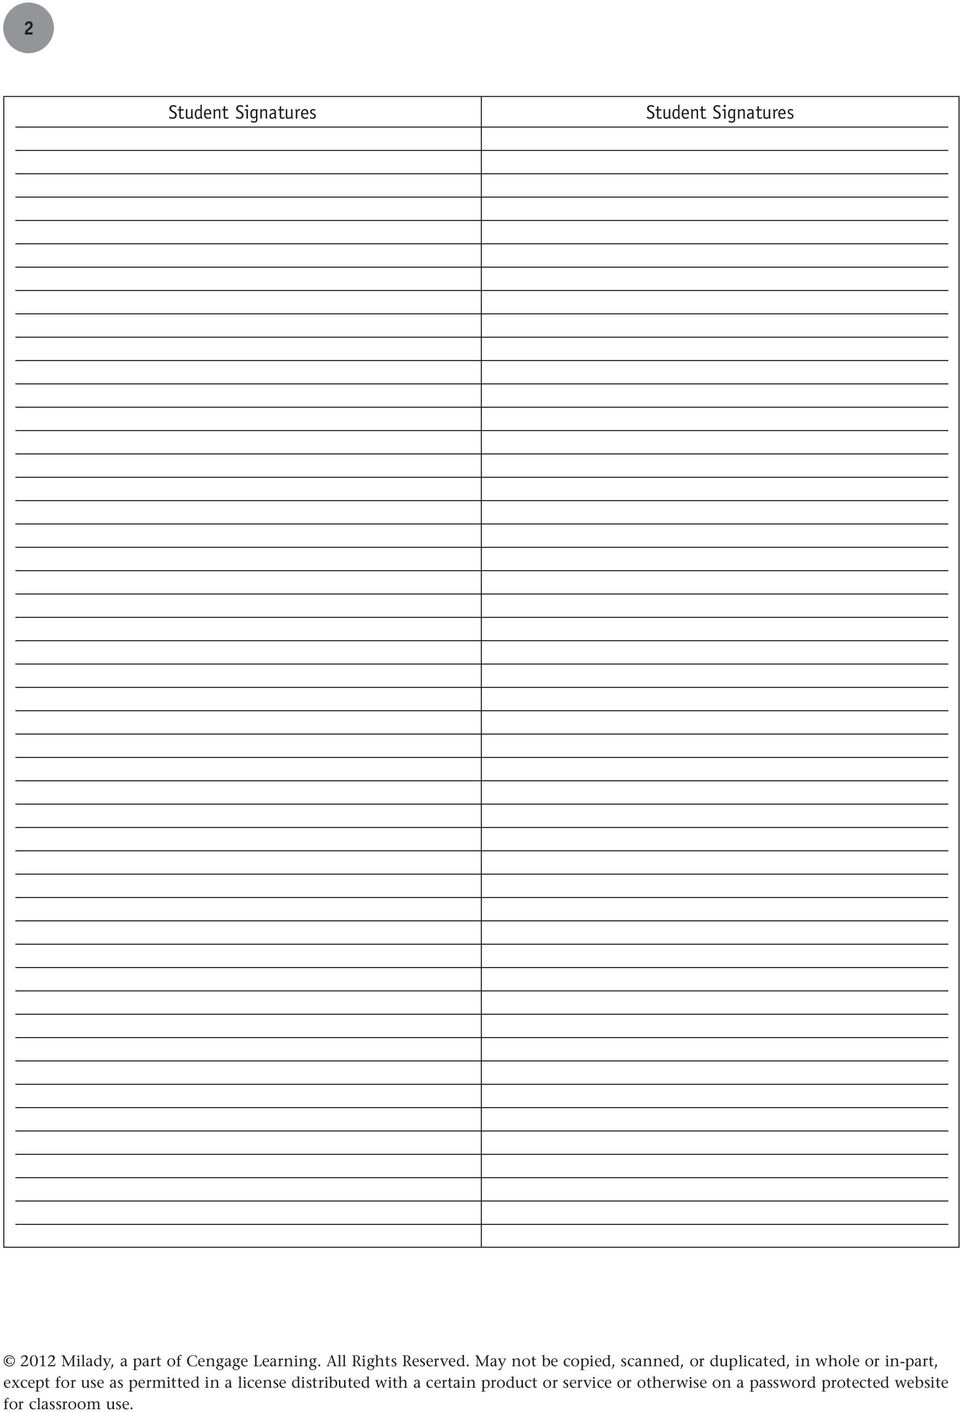 3 Tab 4 Lesson MILADY STANDARD COSMETOLOGY COURSE MANAGEMENT GUIDE CLASS  SIGN-IN SHEET 1.0 SUBJECT: ORIENTATION TOPIC: WELCOME, INTRODUCTION TO  SCHOOL ...